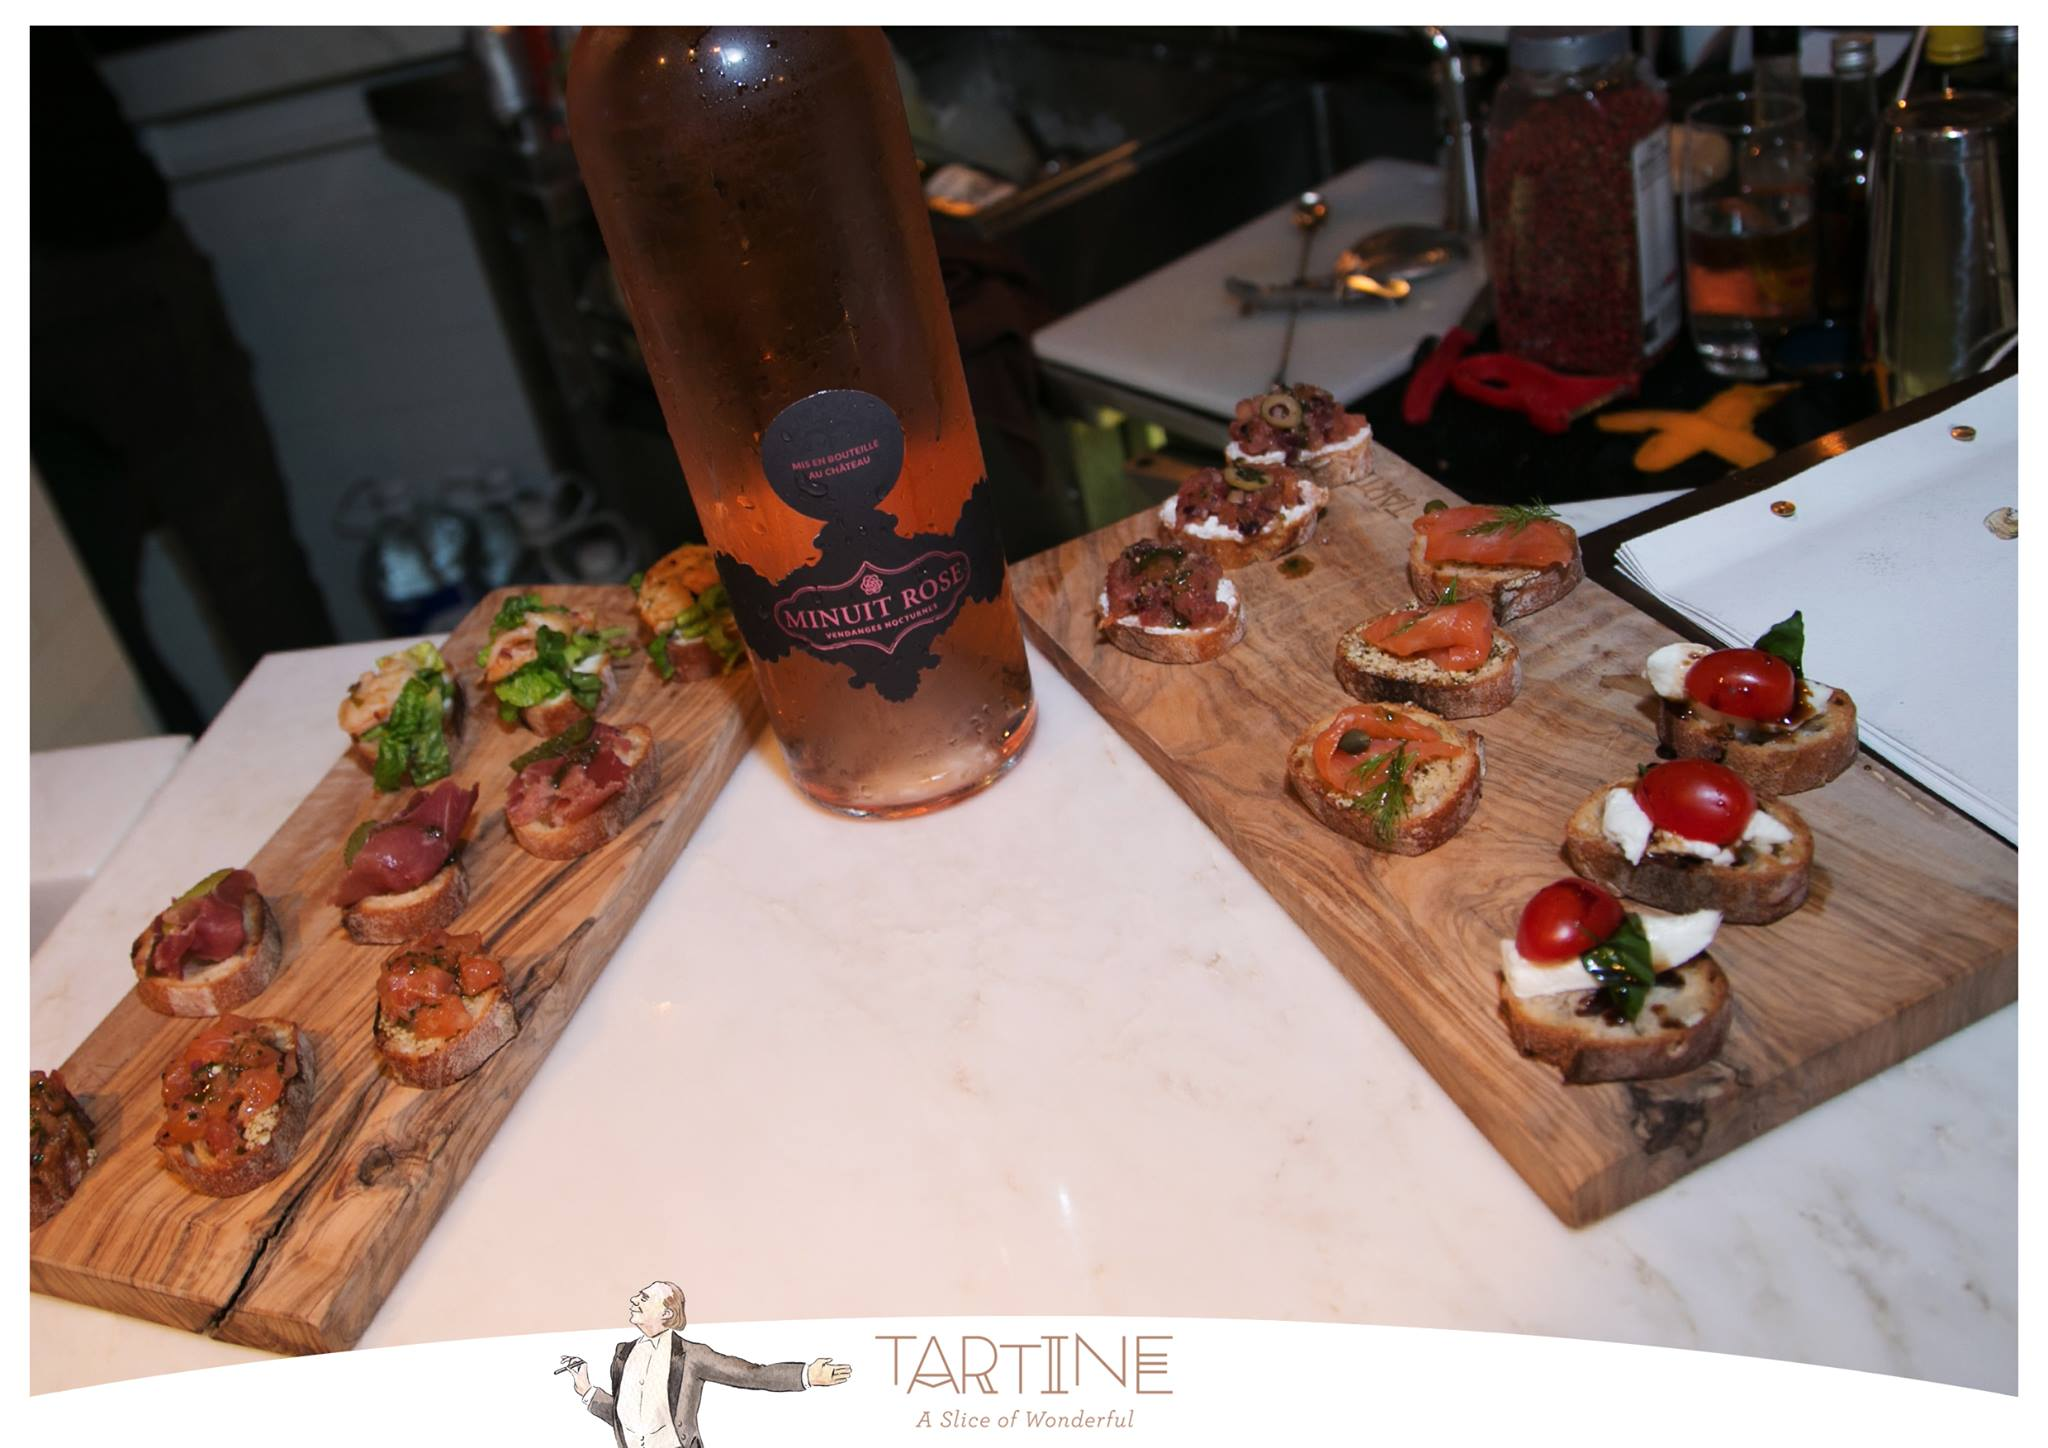 Tartine Thirsty Thrusday (2 December 2015)